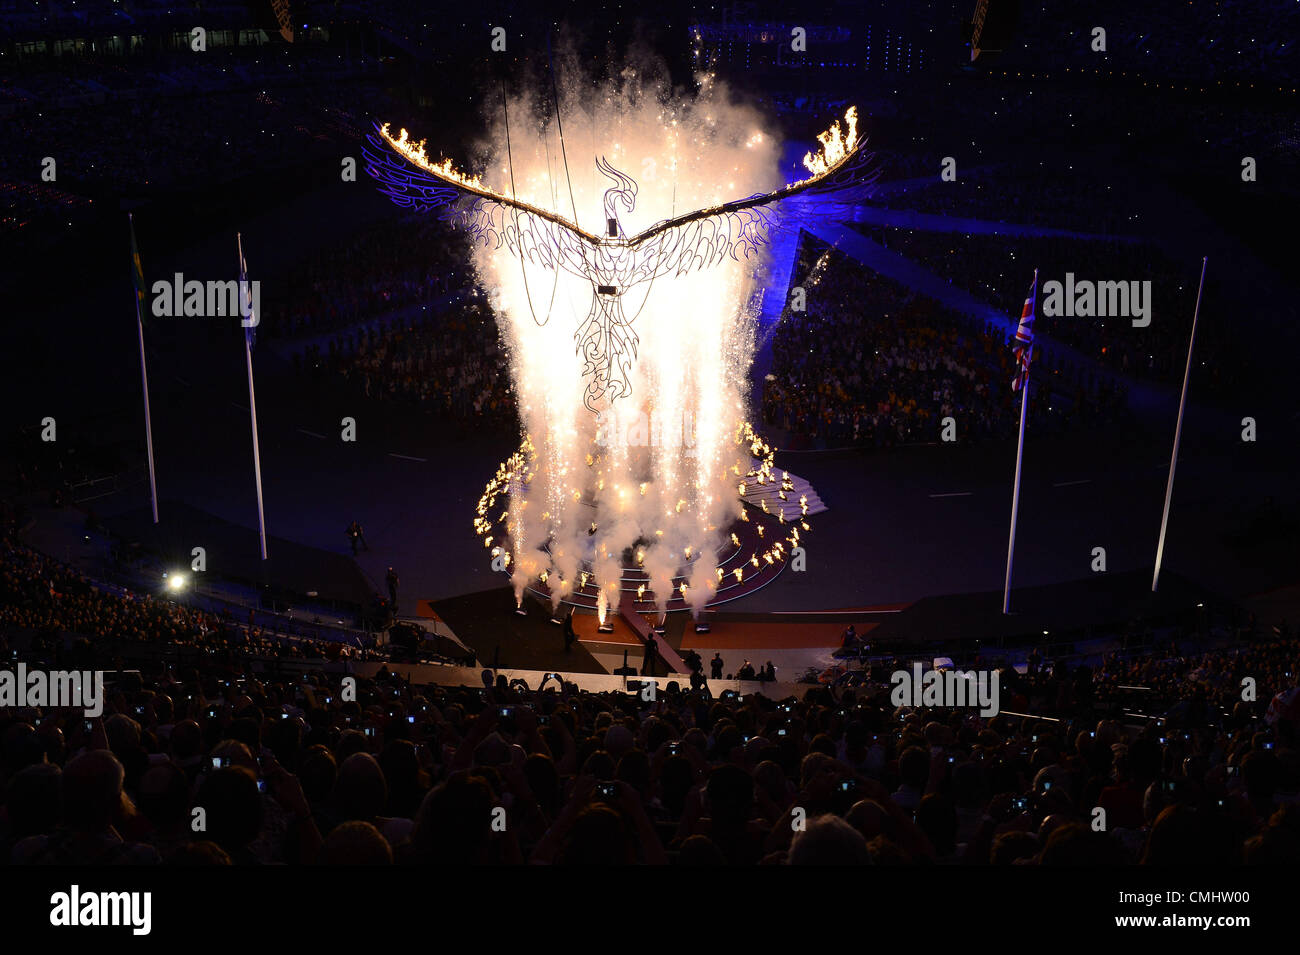 LONDON, ENGLAND - AUGUST 12, the Olympic flame is about to be extinguished during the closing ceremony of the London - Stock Image